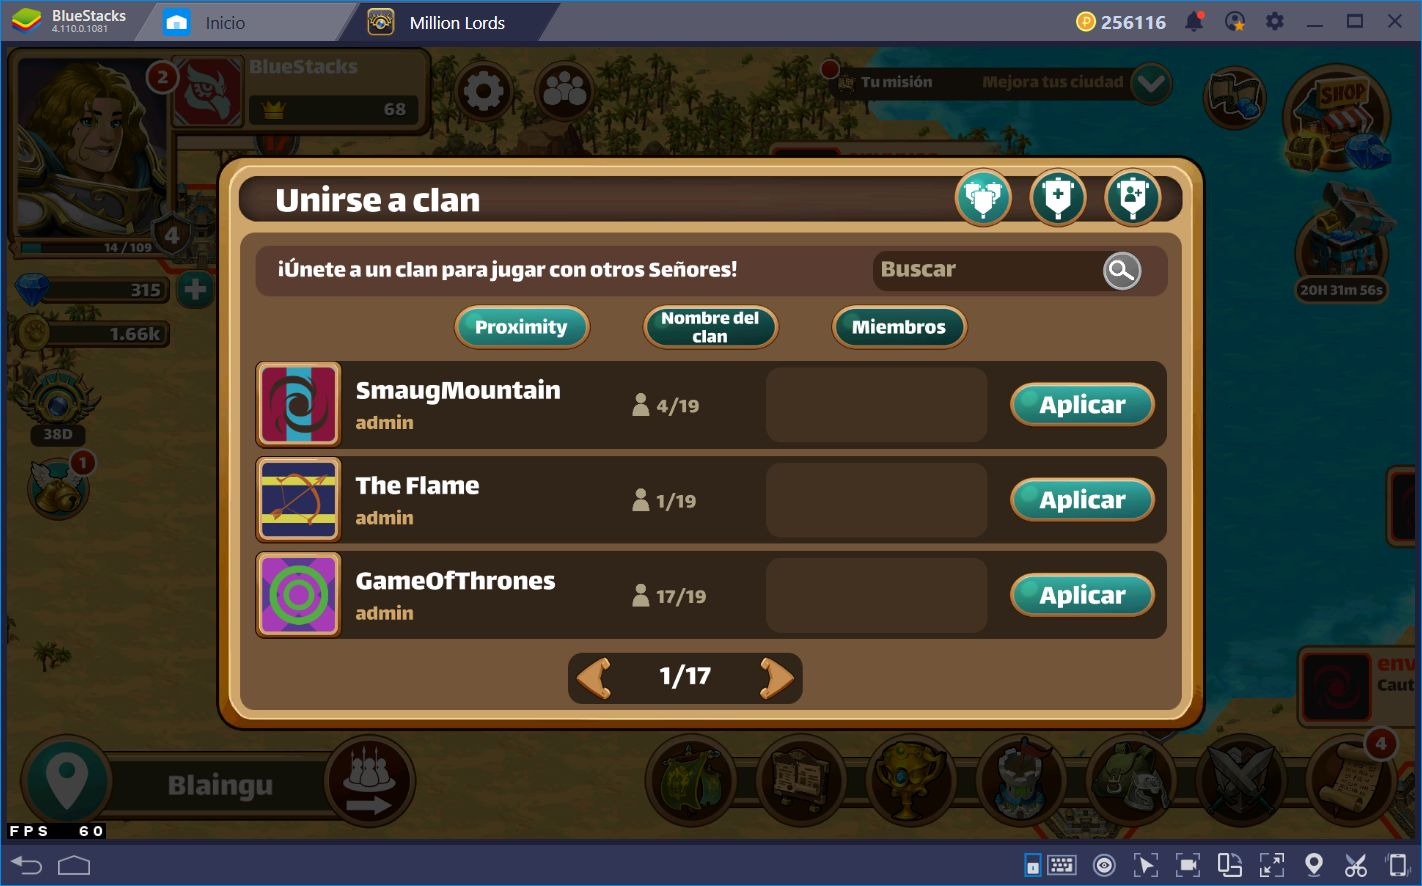 Guía de Principiantes para Million Lords en BlueStacks